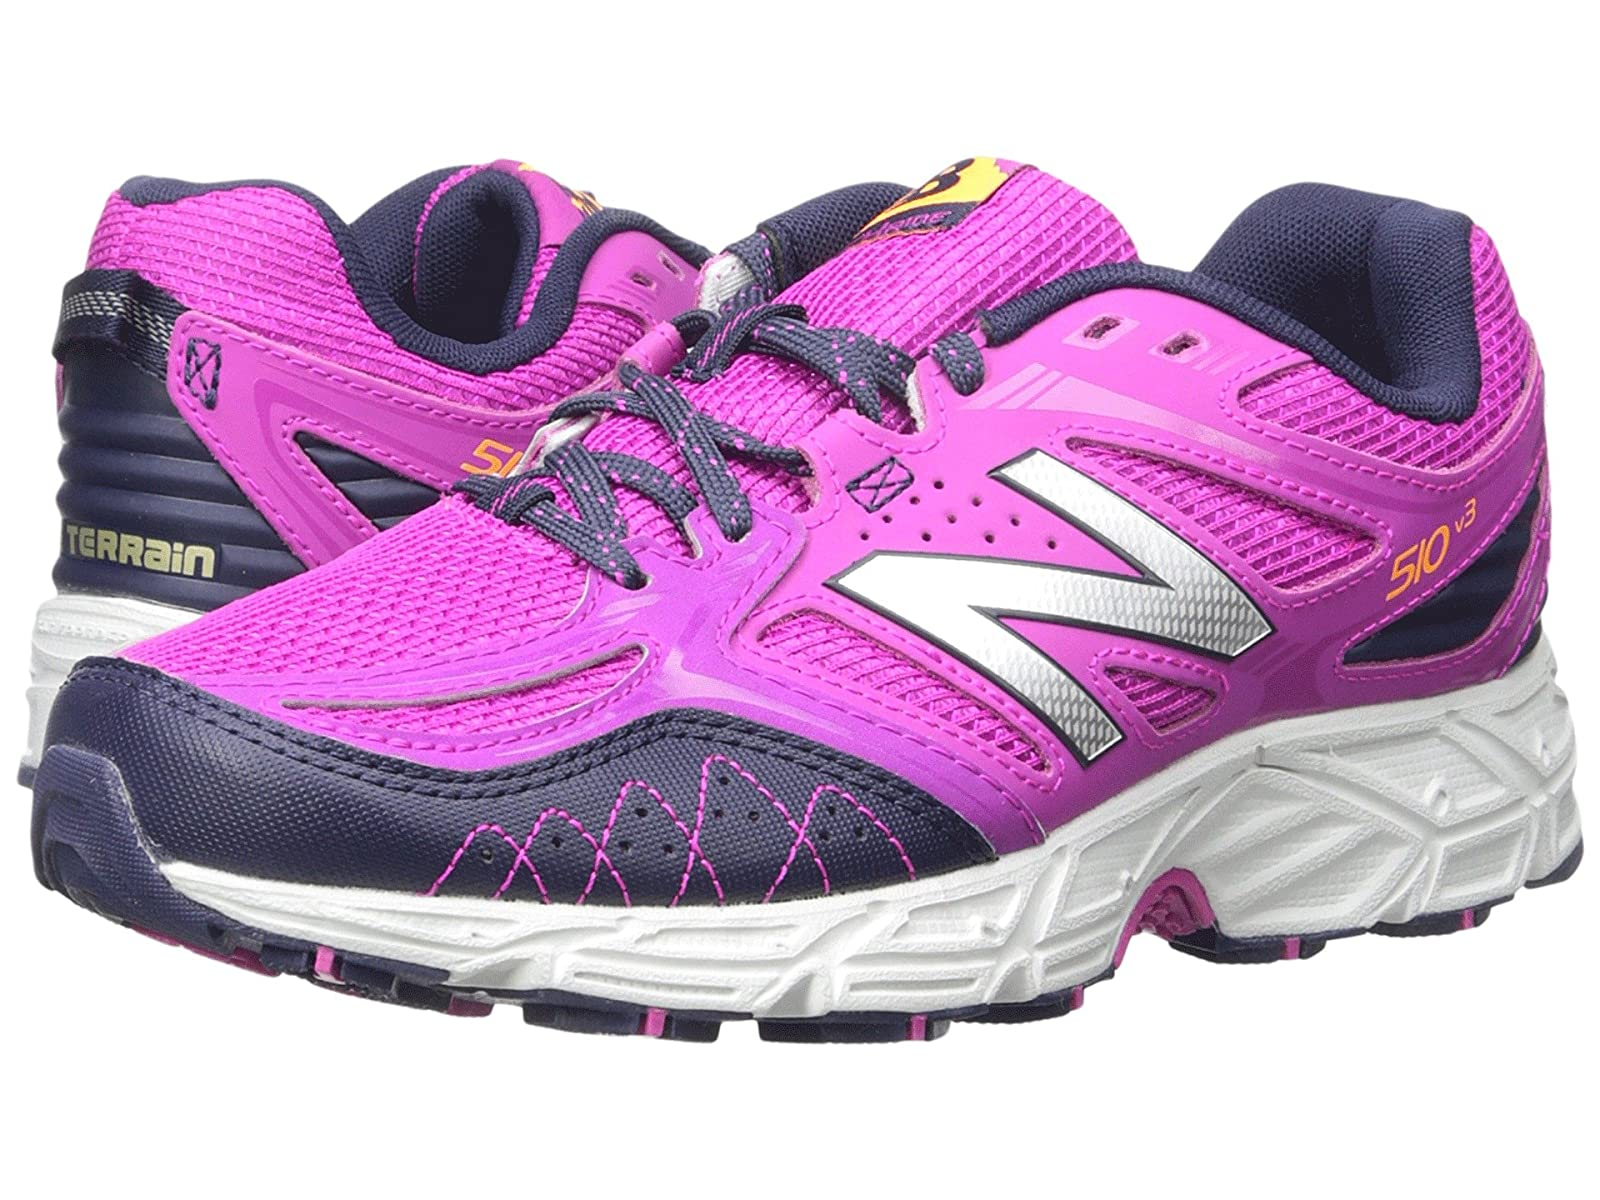 New Balance WT510V3 - USACheap and distinctive eye-catching shoes